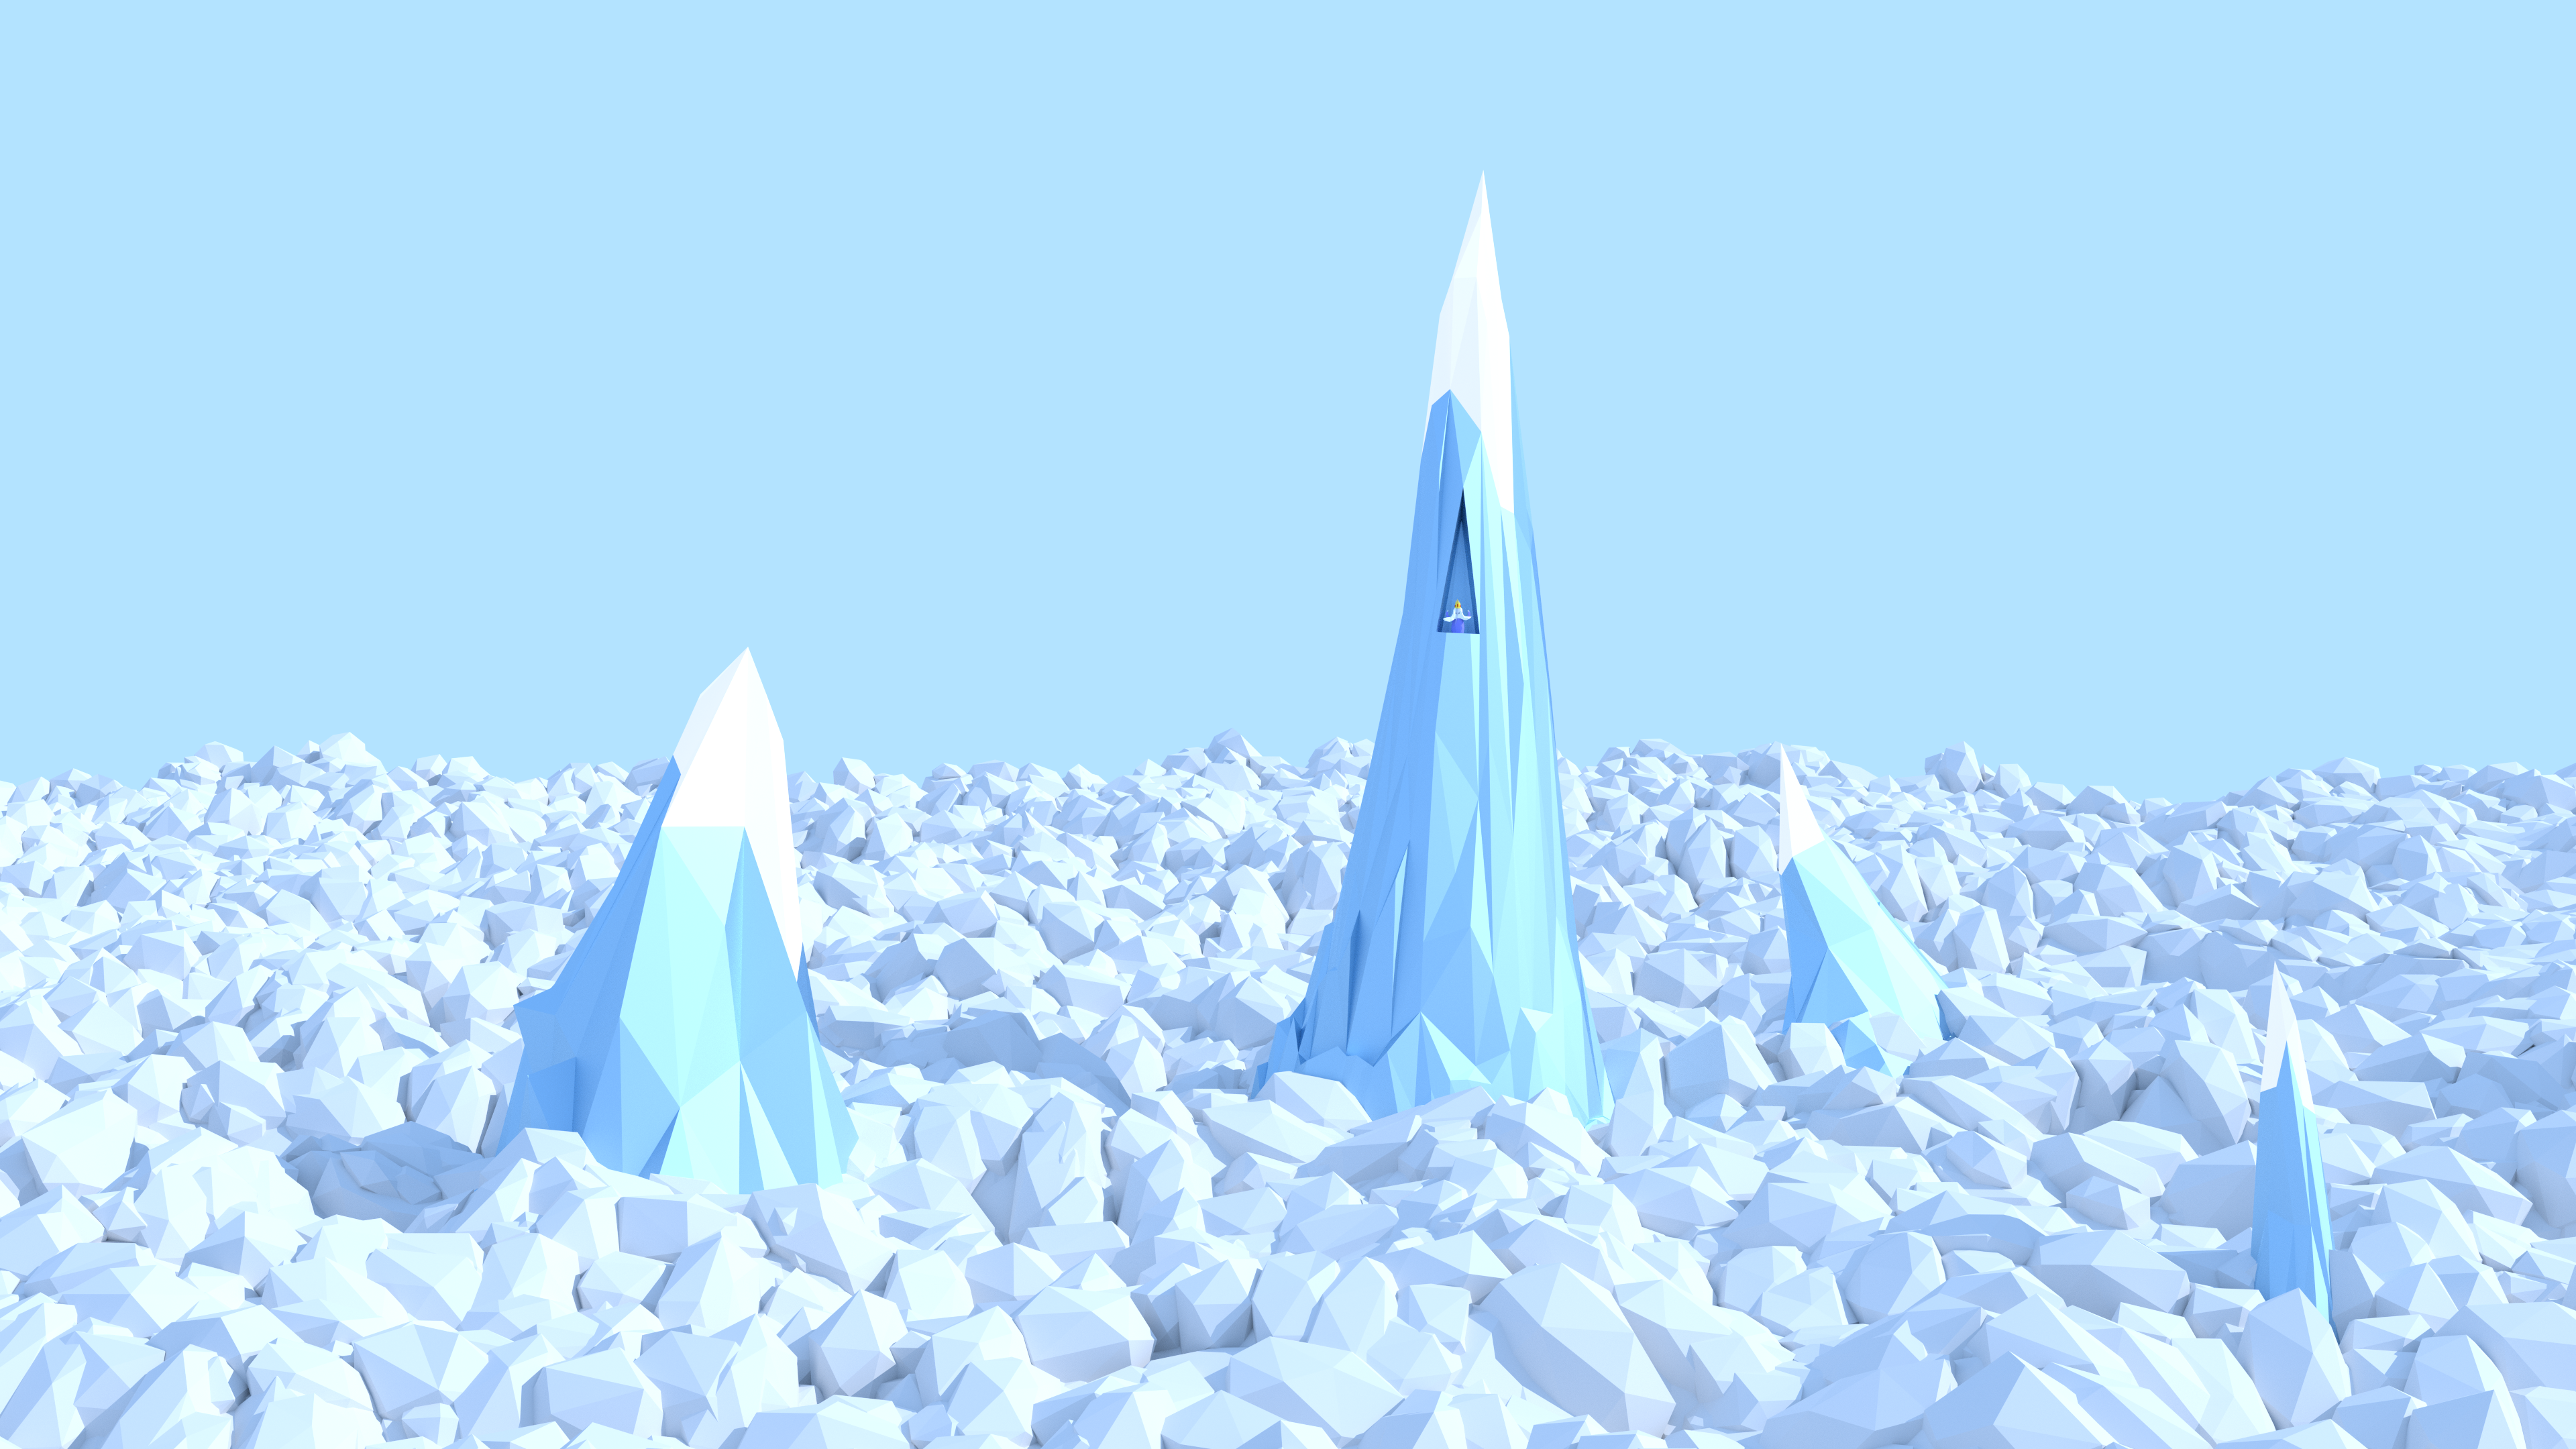 Third Low Poly Art Pubg: Low Poly Ice King By Vermacian55 On DeviantArt